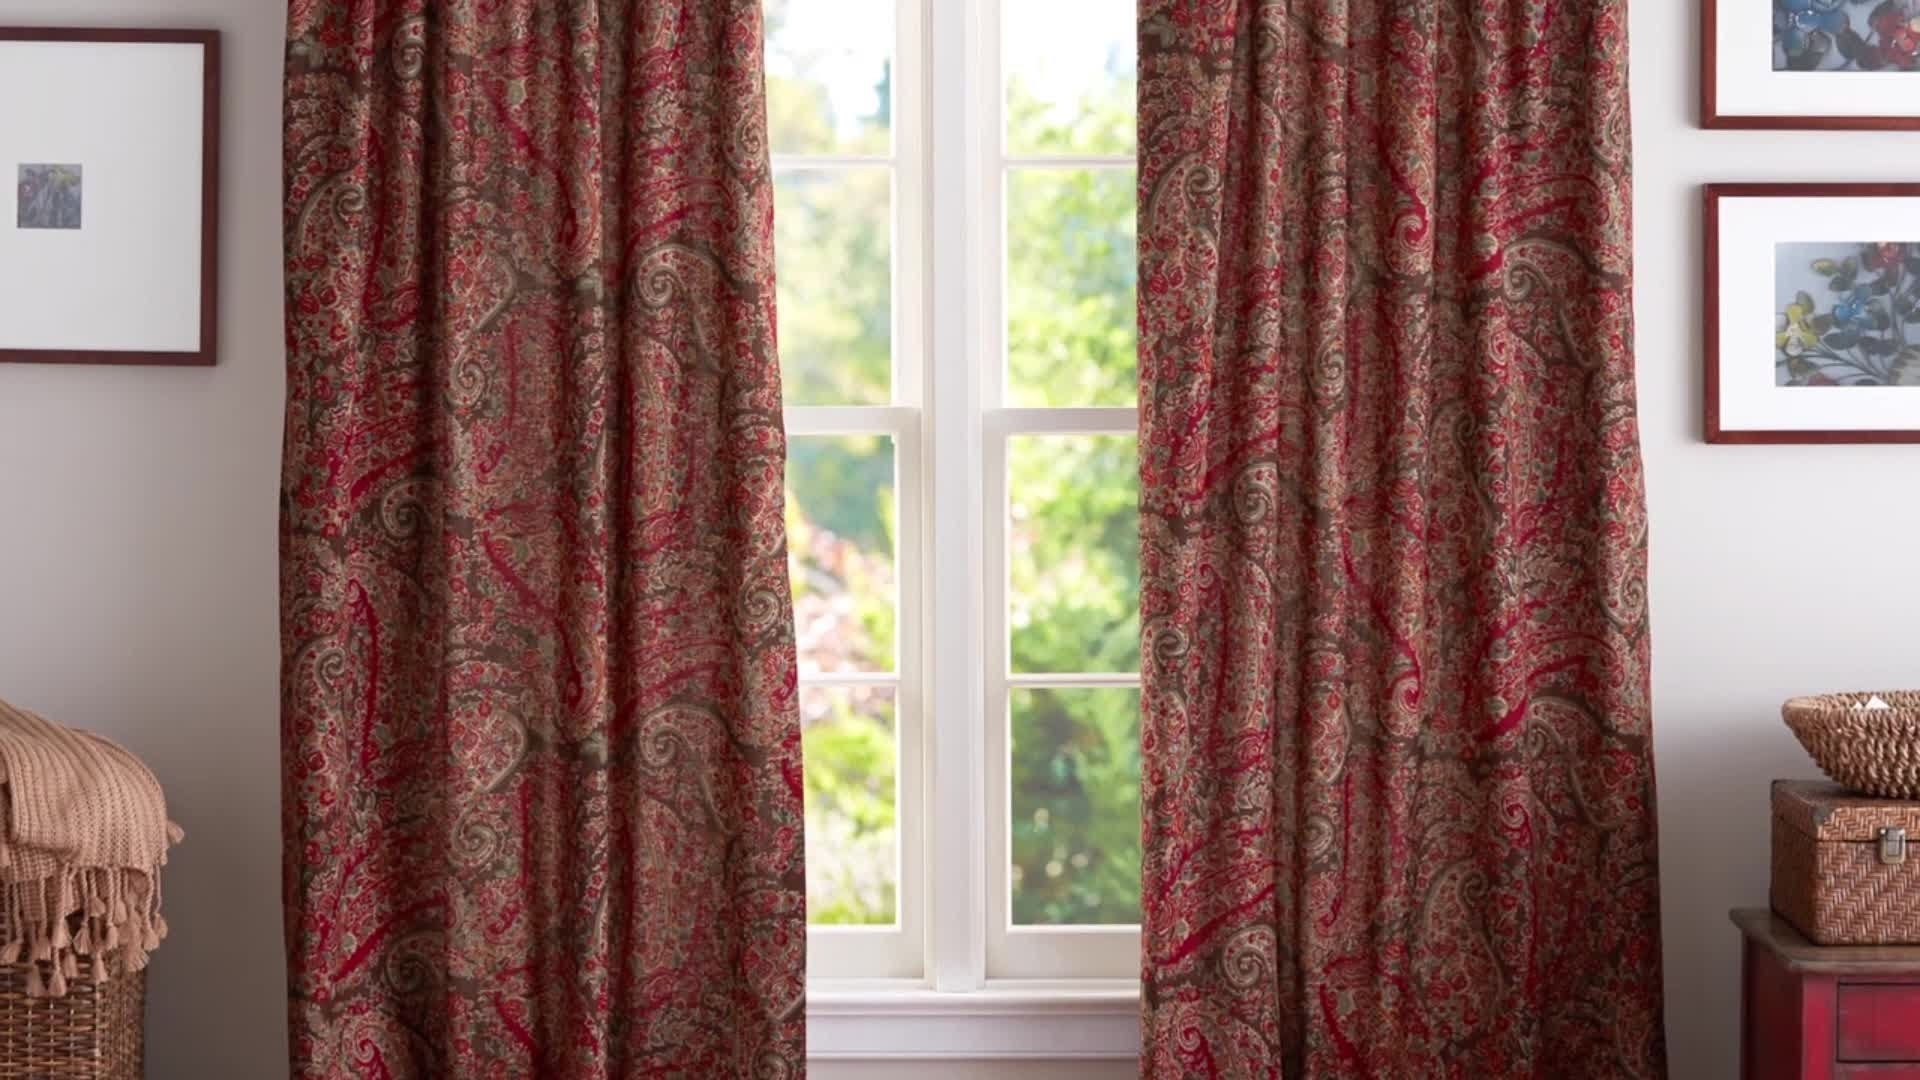 How To Hang Curtains Pottery Barn Youtube Pertaining To Hanging Curtains (View 10 of 25)